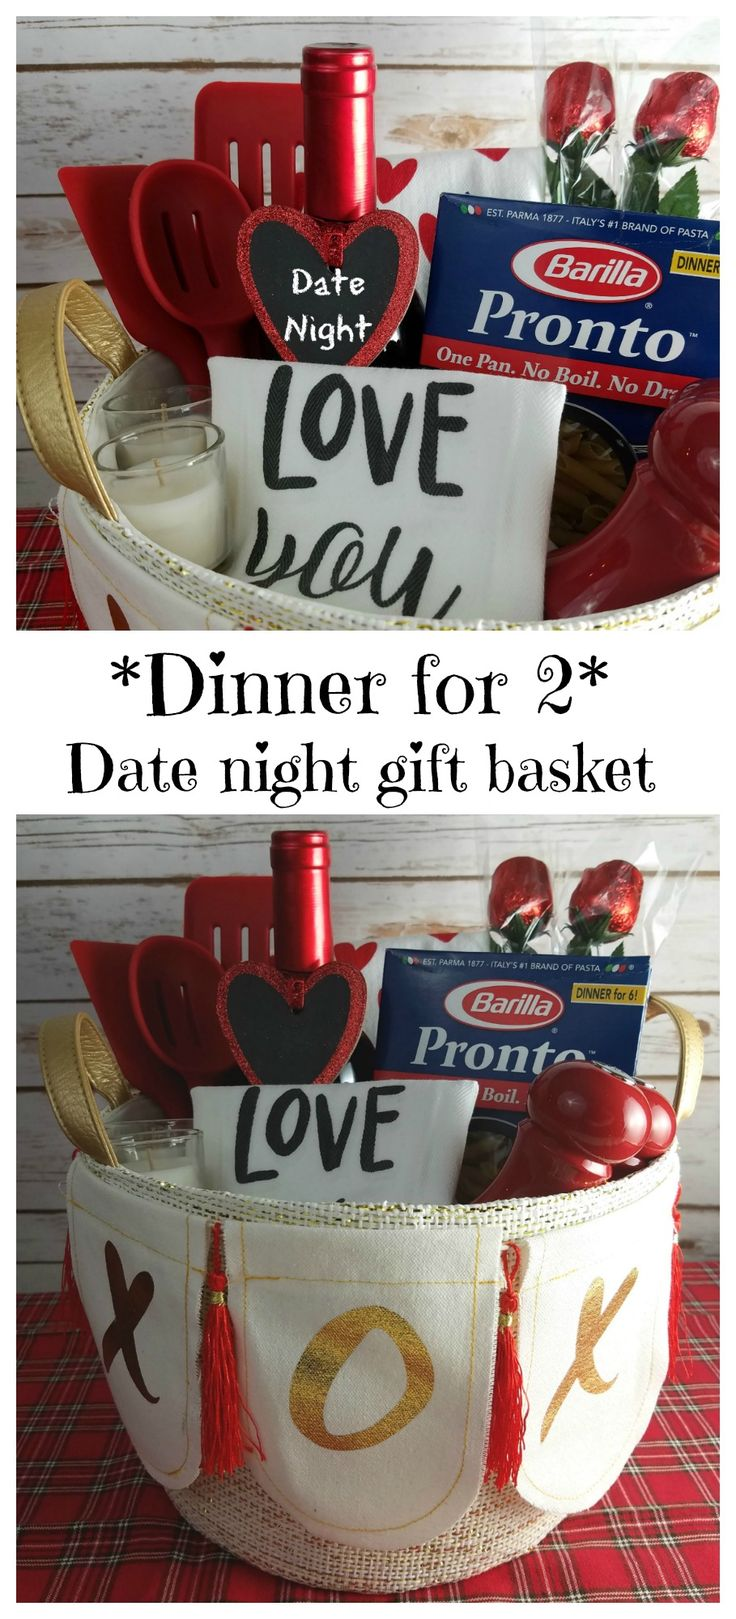 Msg 4 21+ - Valentine's Day date night gift basket and 'dinner for 2' pasta recipe #ad #WonderfulYourWay